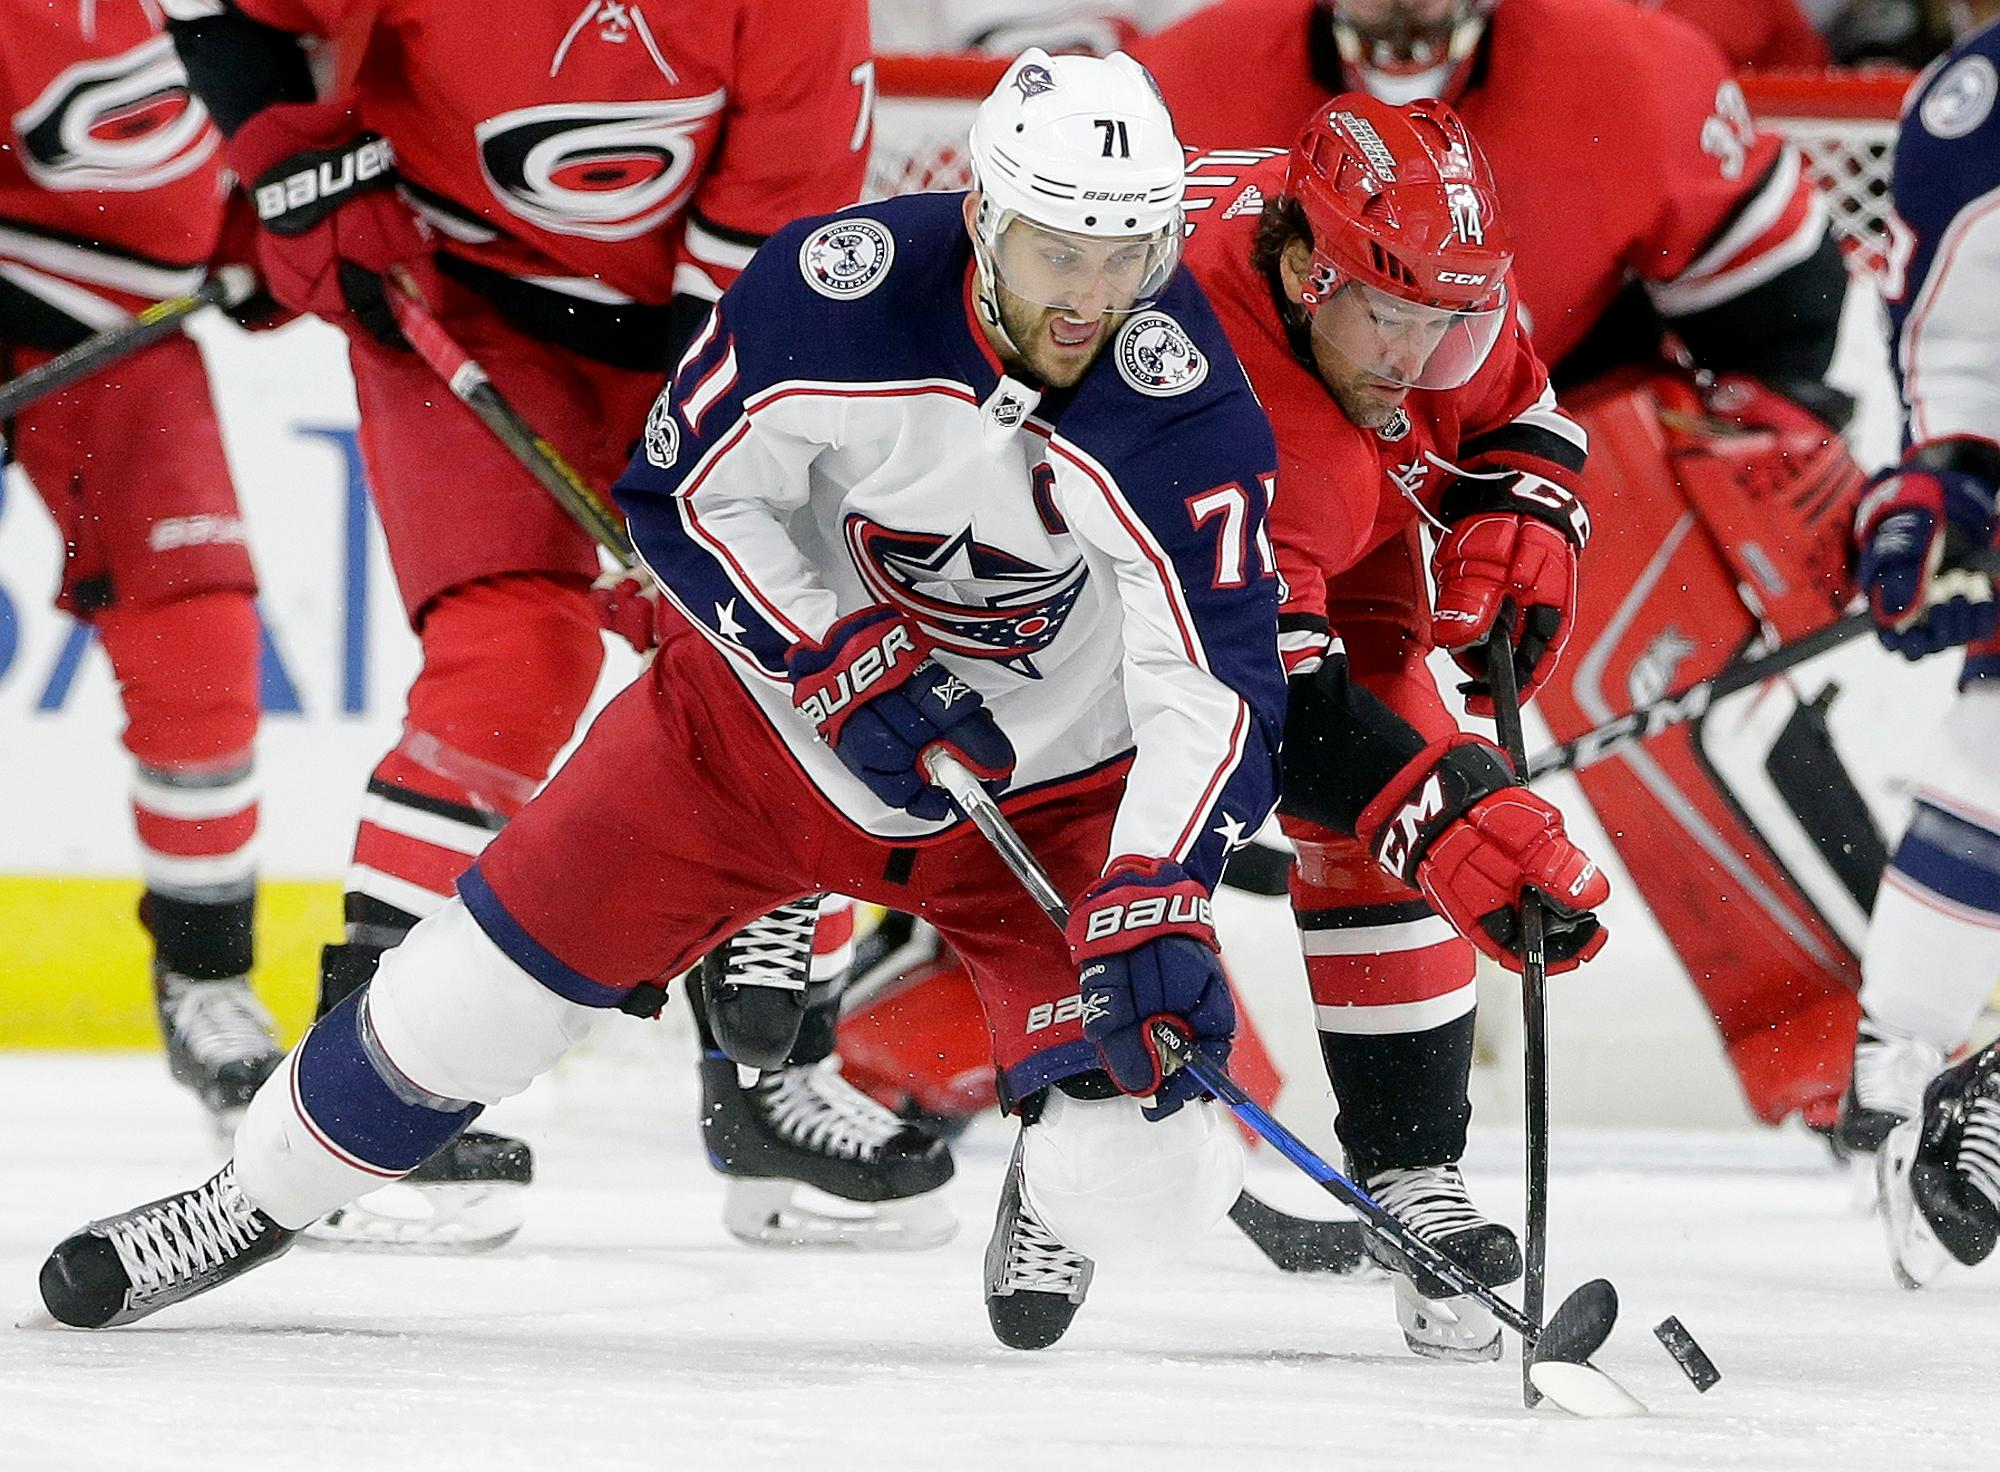 Columbus Blue Jackets' Nick Foligno (71) and Carolina Hurricanes' Justin Williams (14) chase the puck during the second period of an NHL hockey game in Raleigh, N.C., Tuesday, Oct. 10, 2017. (AP Photo/Gerry Broome)